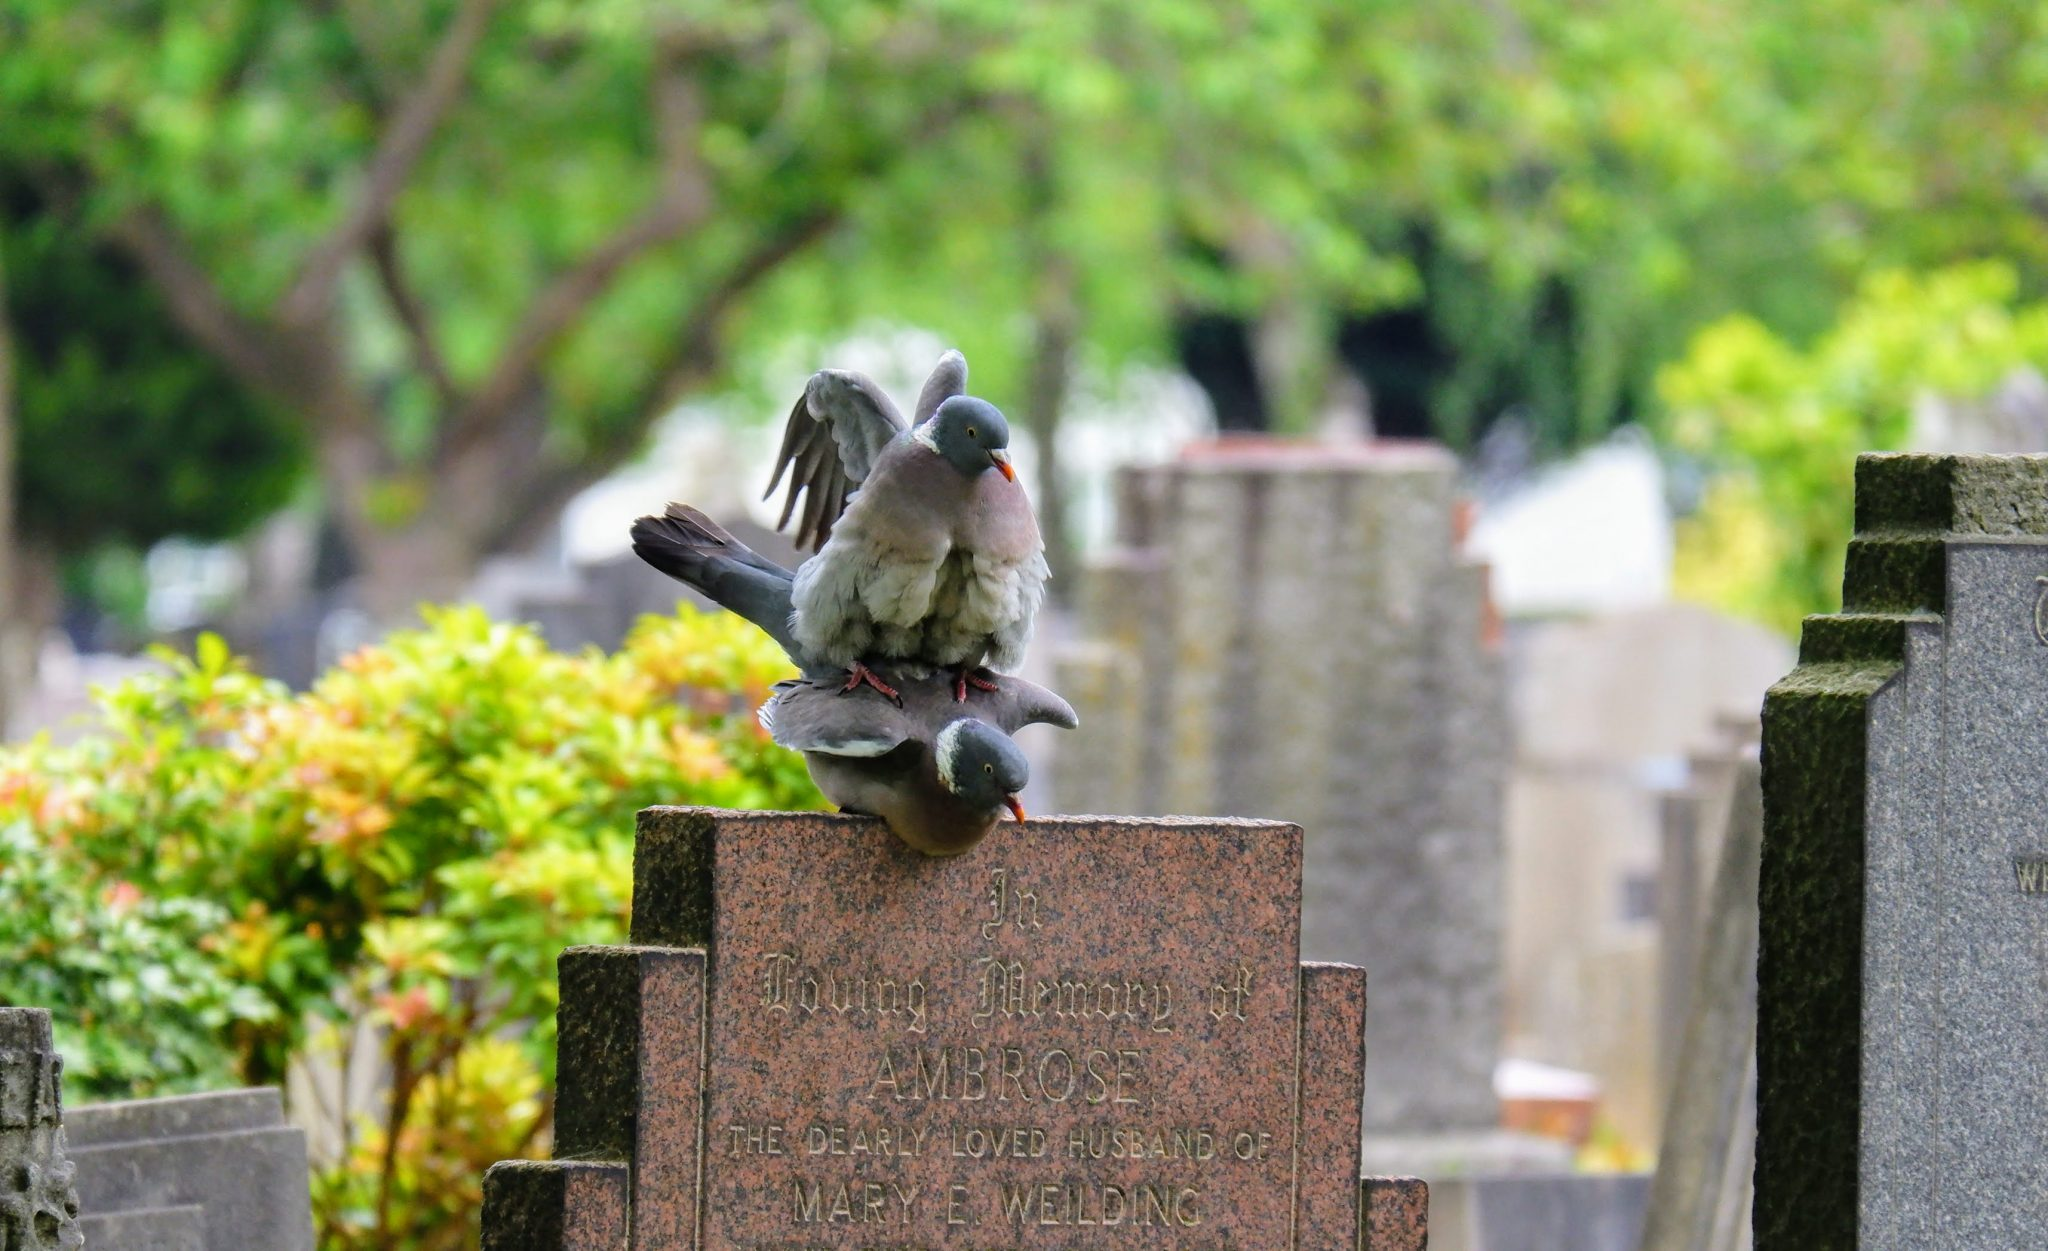 Urban birdwatching at Southern Cemetery in Manchester